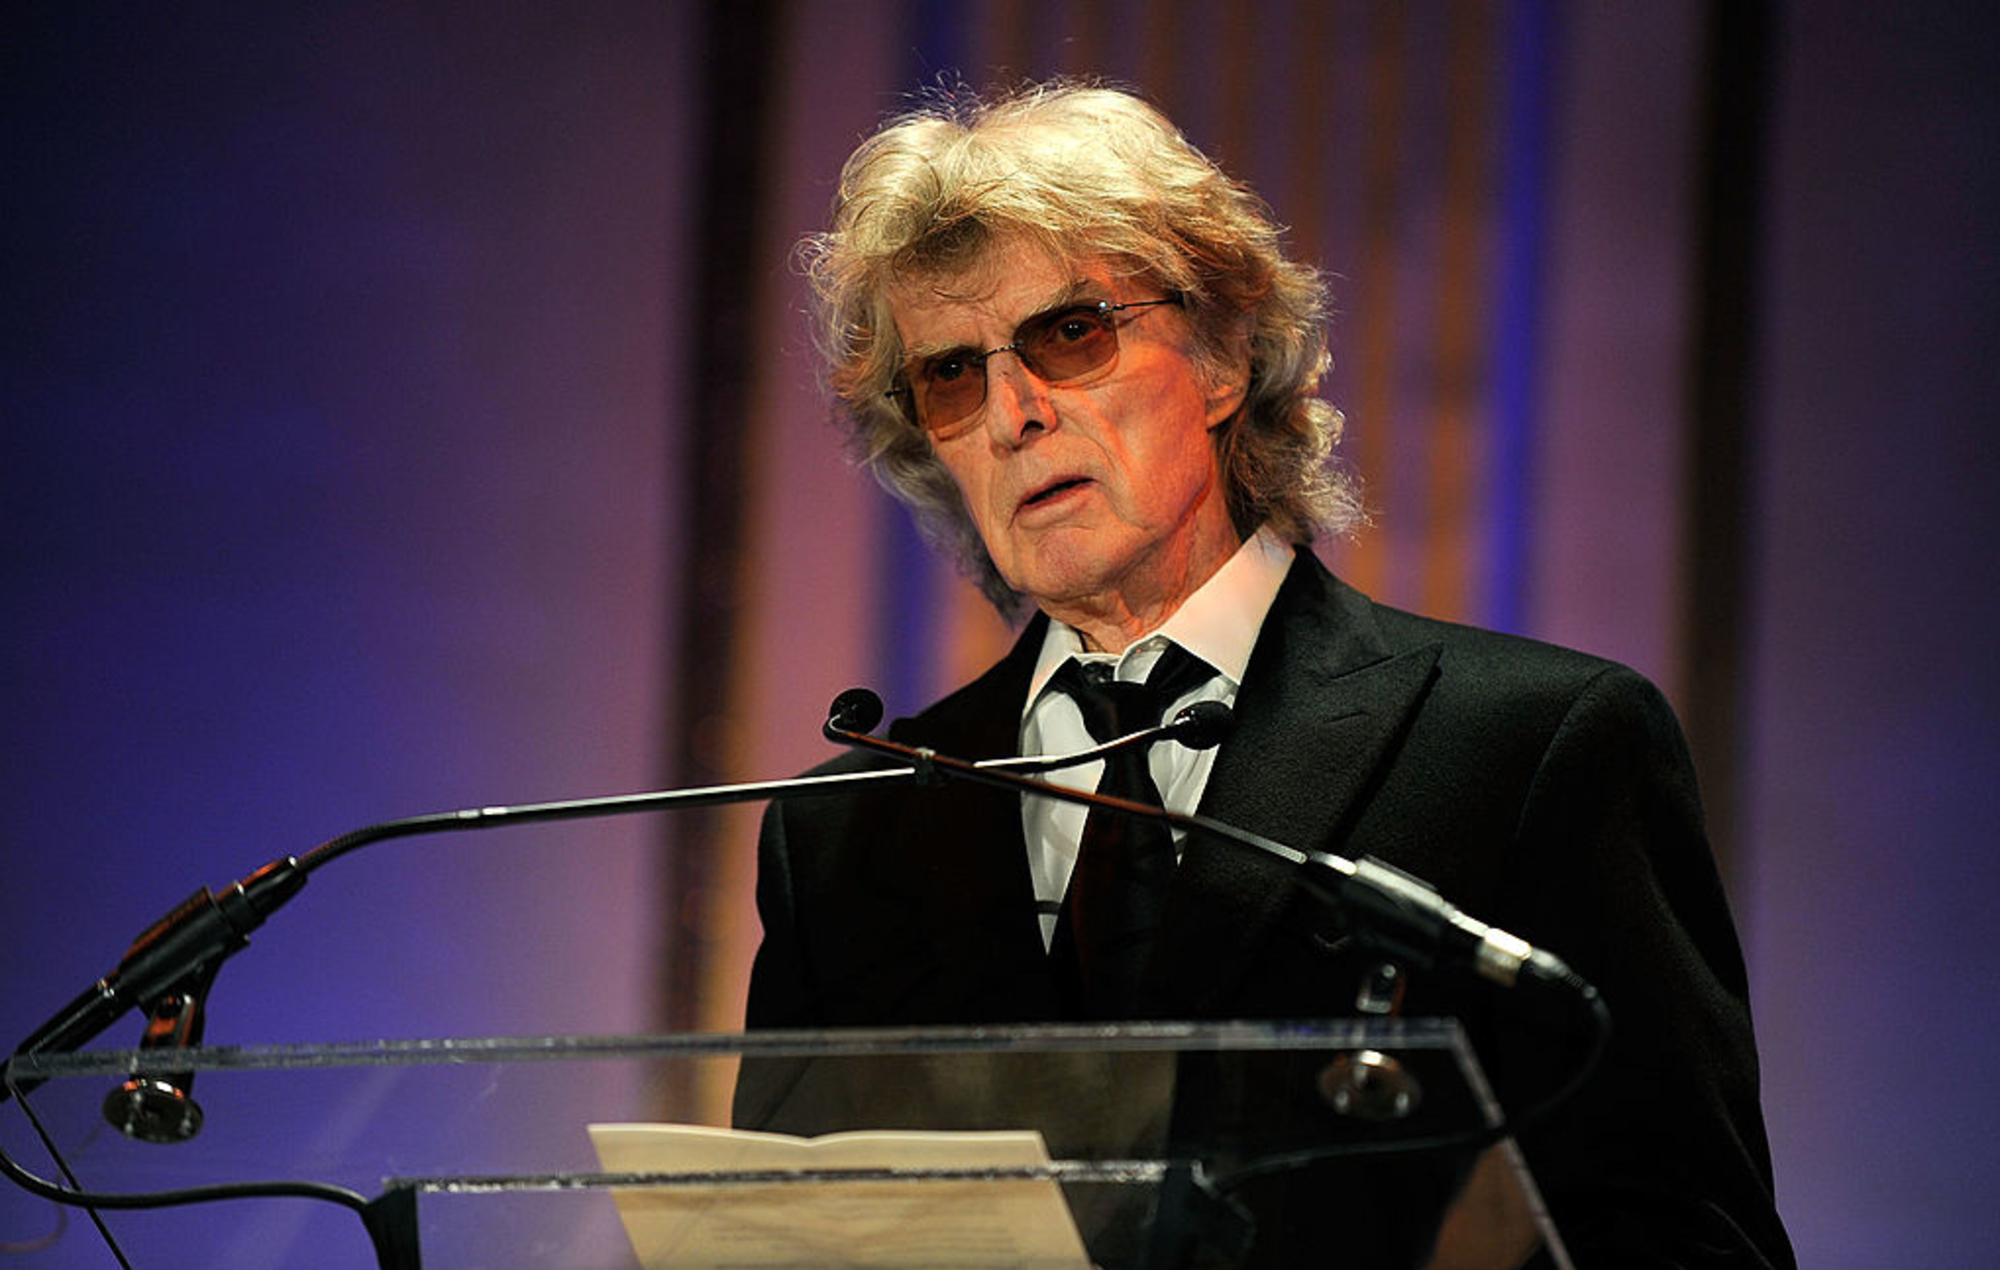 Veteran radio broadcaster and shock jock Don Imus has died - EpicNews